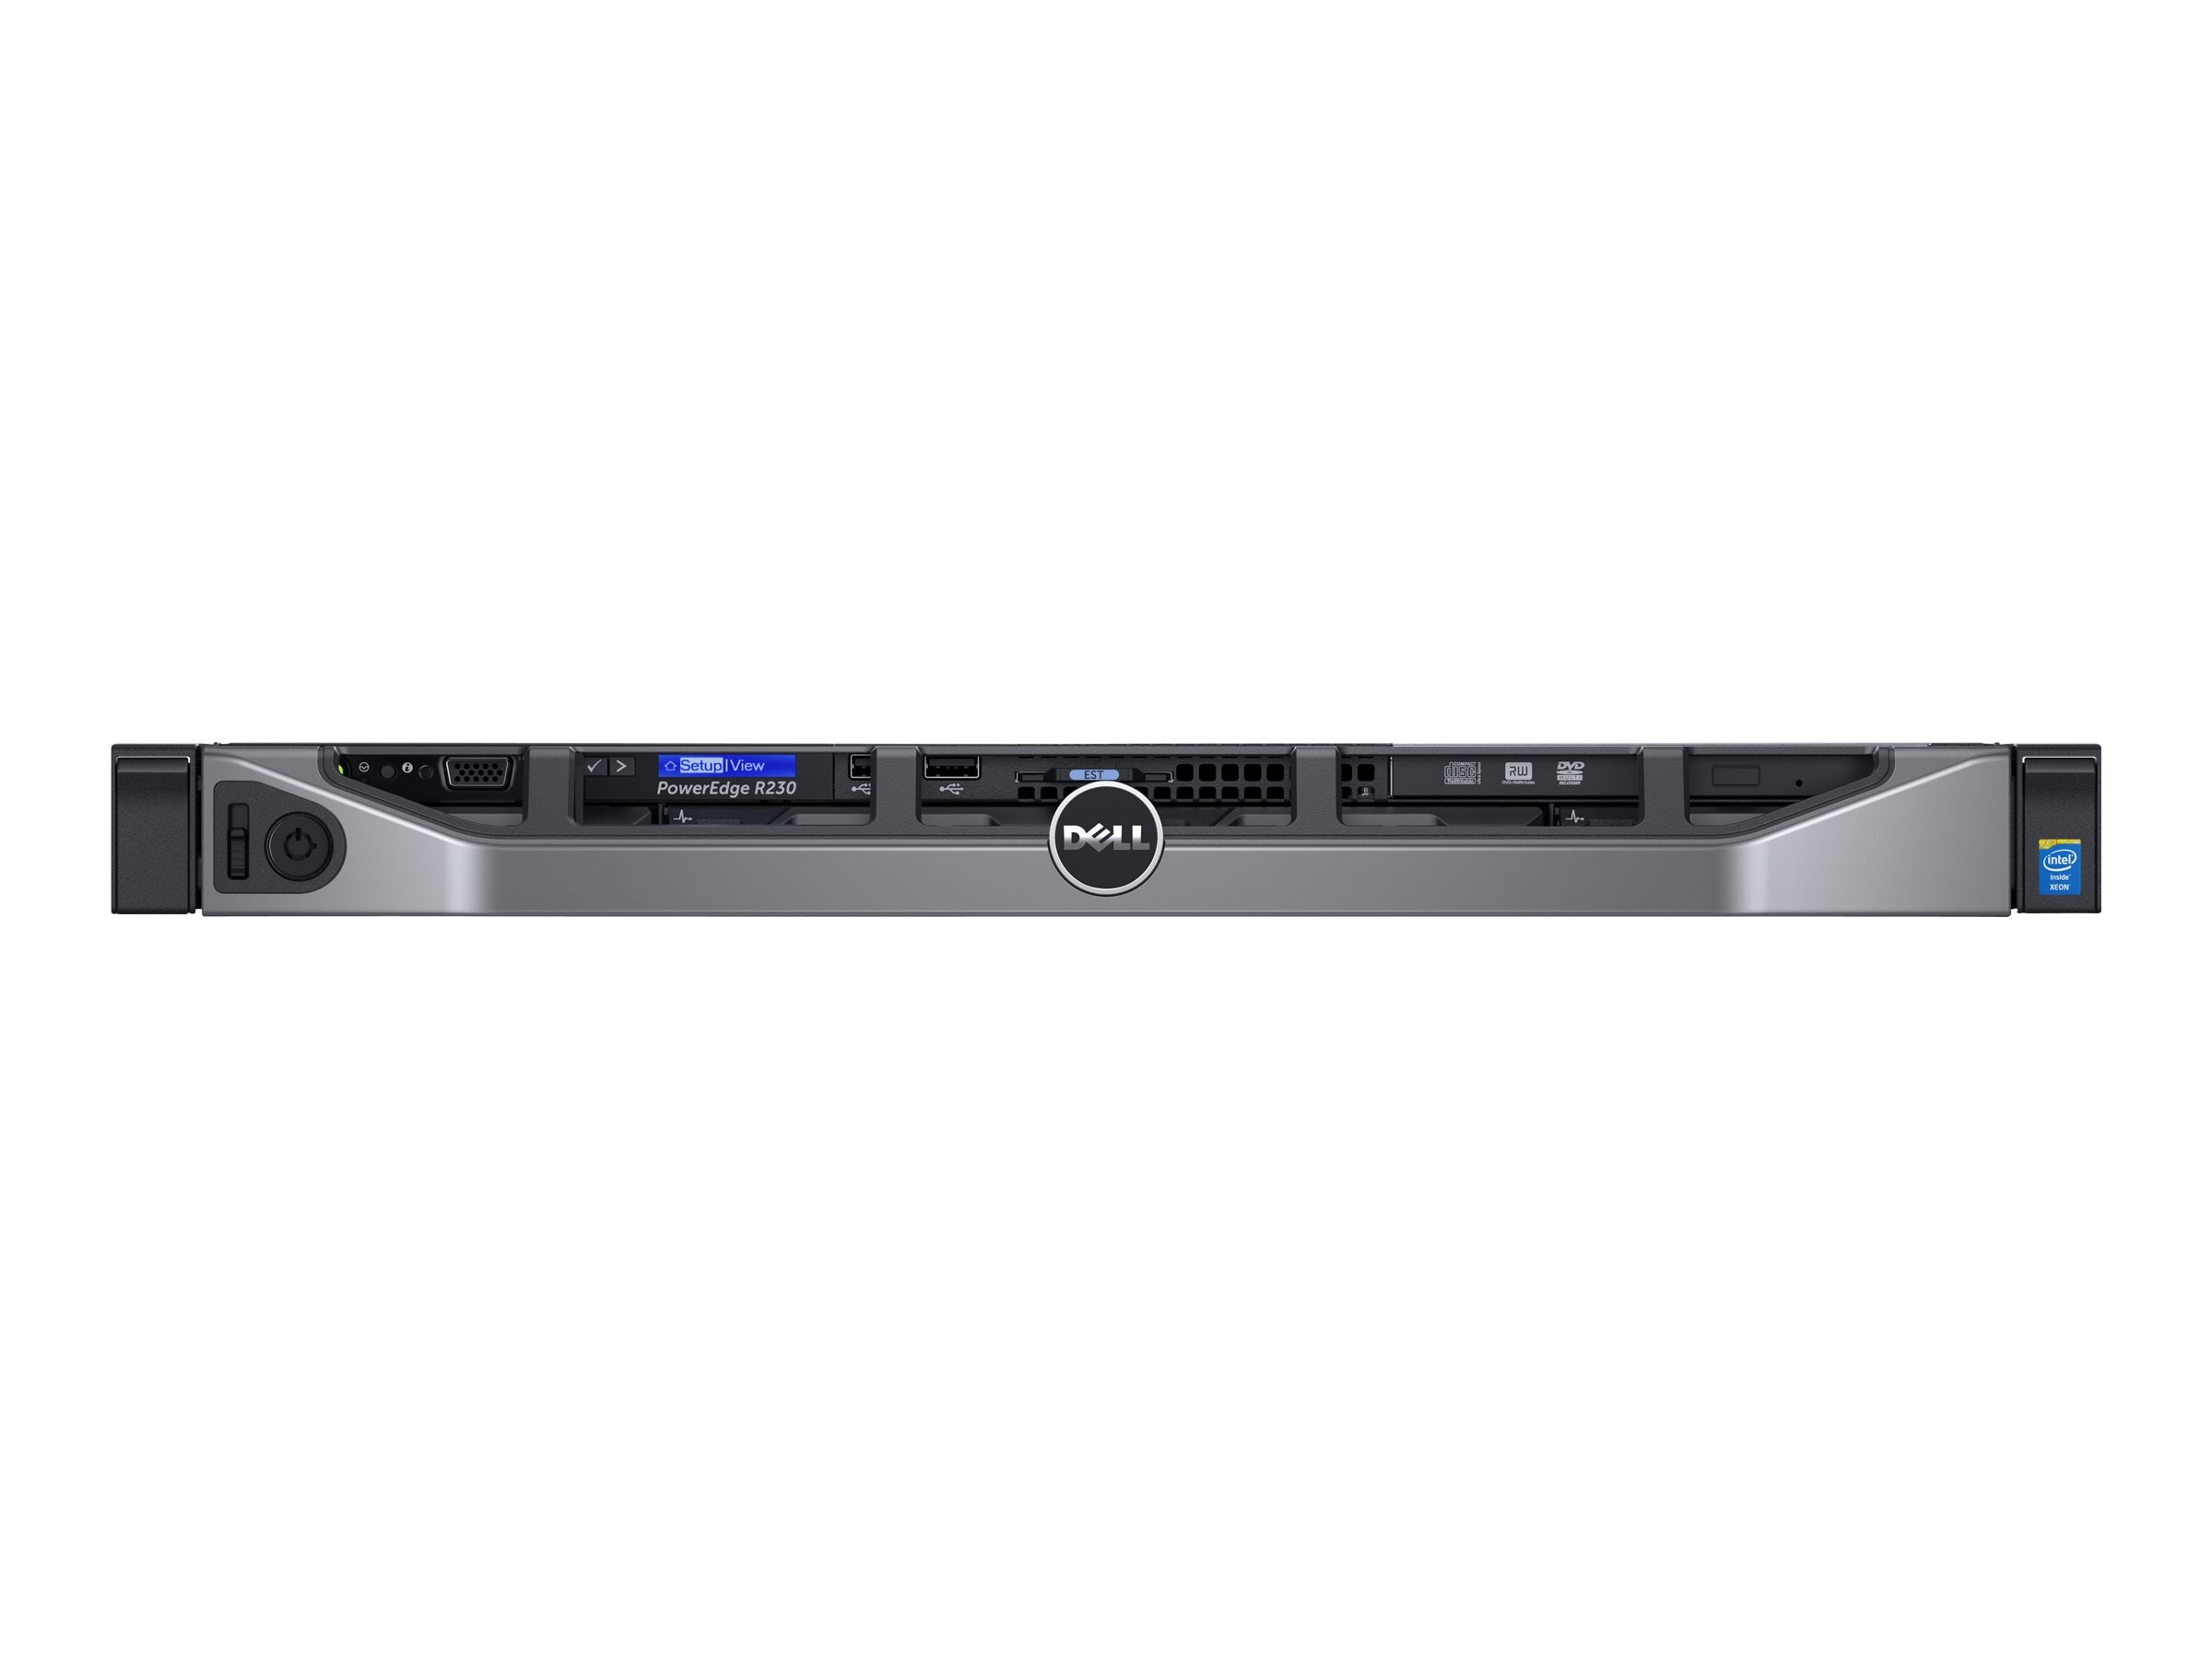 Dell PowerEdge R230 1U RM Xeon QC E3-1240 v5 3.5GHz 8GB 1x1TB 2x3.5 DC Bays DVD 2xGbE 250W, 463-7648